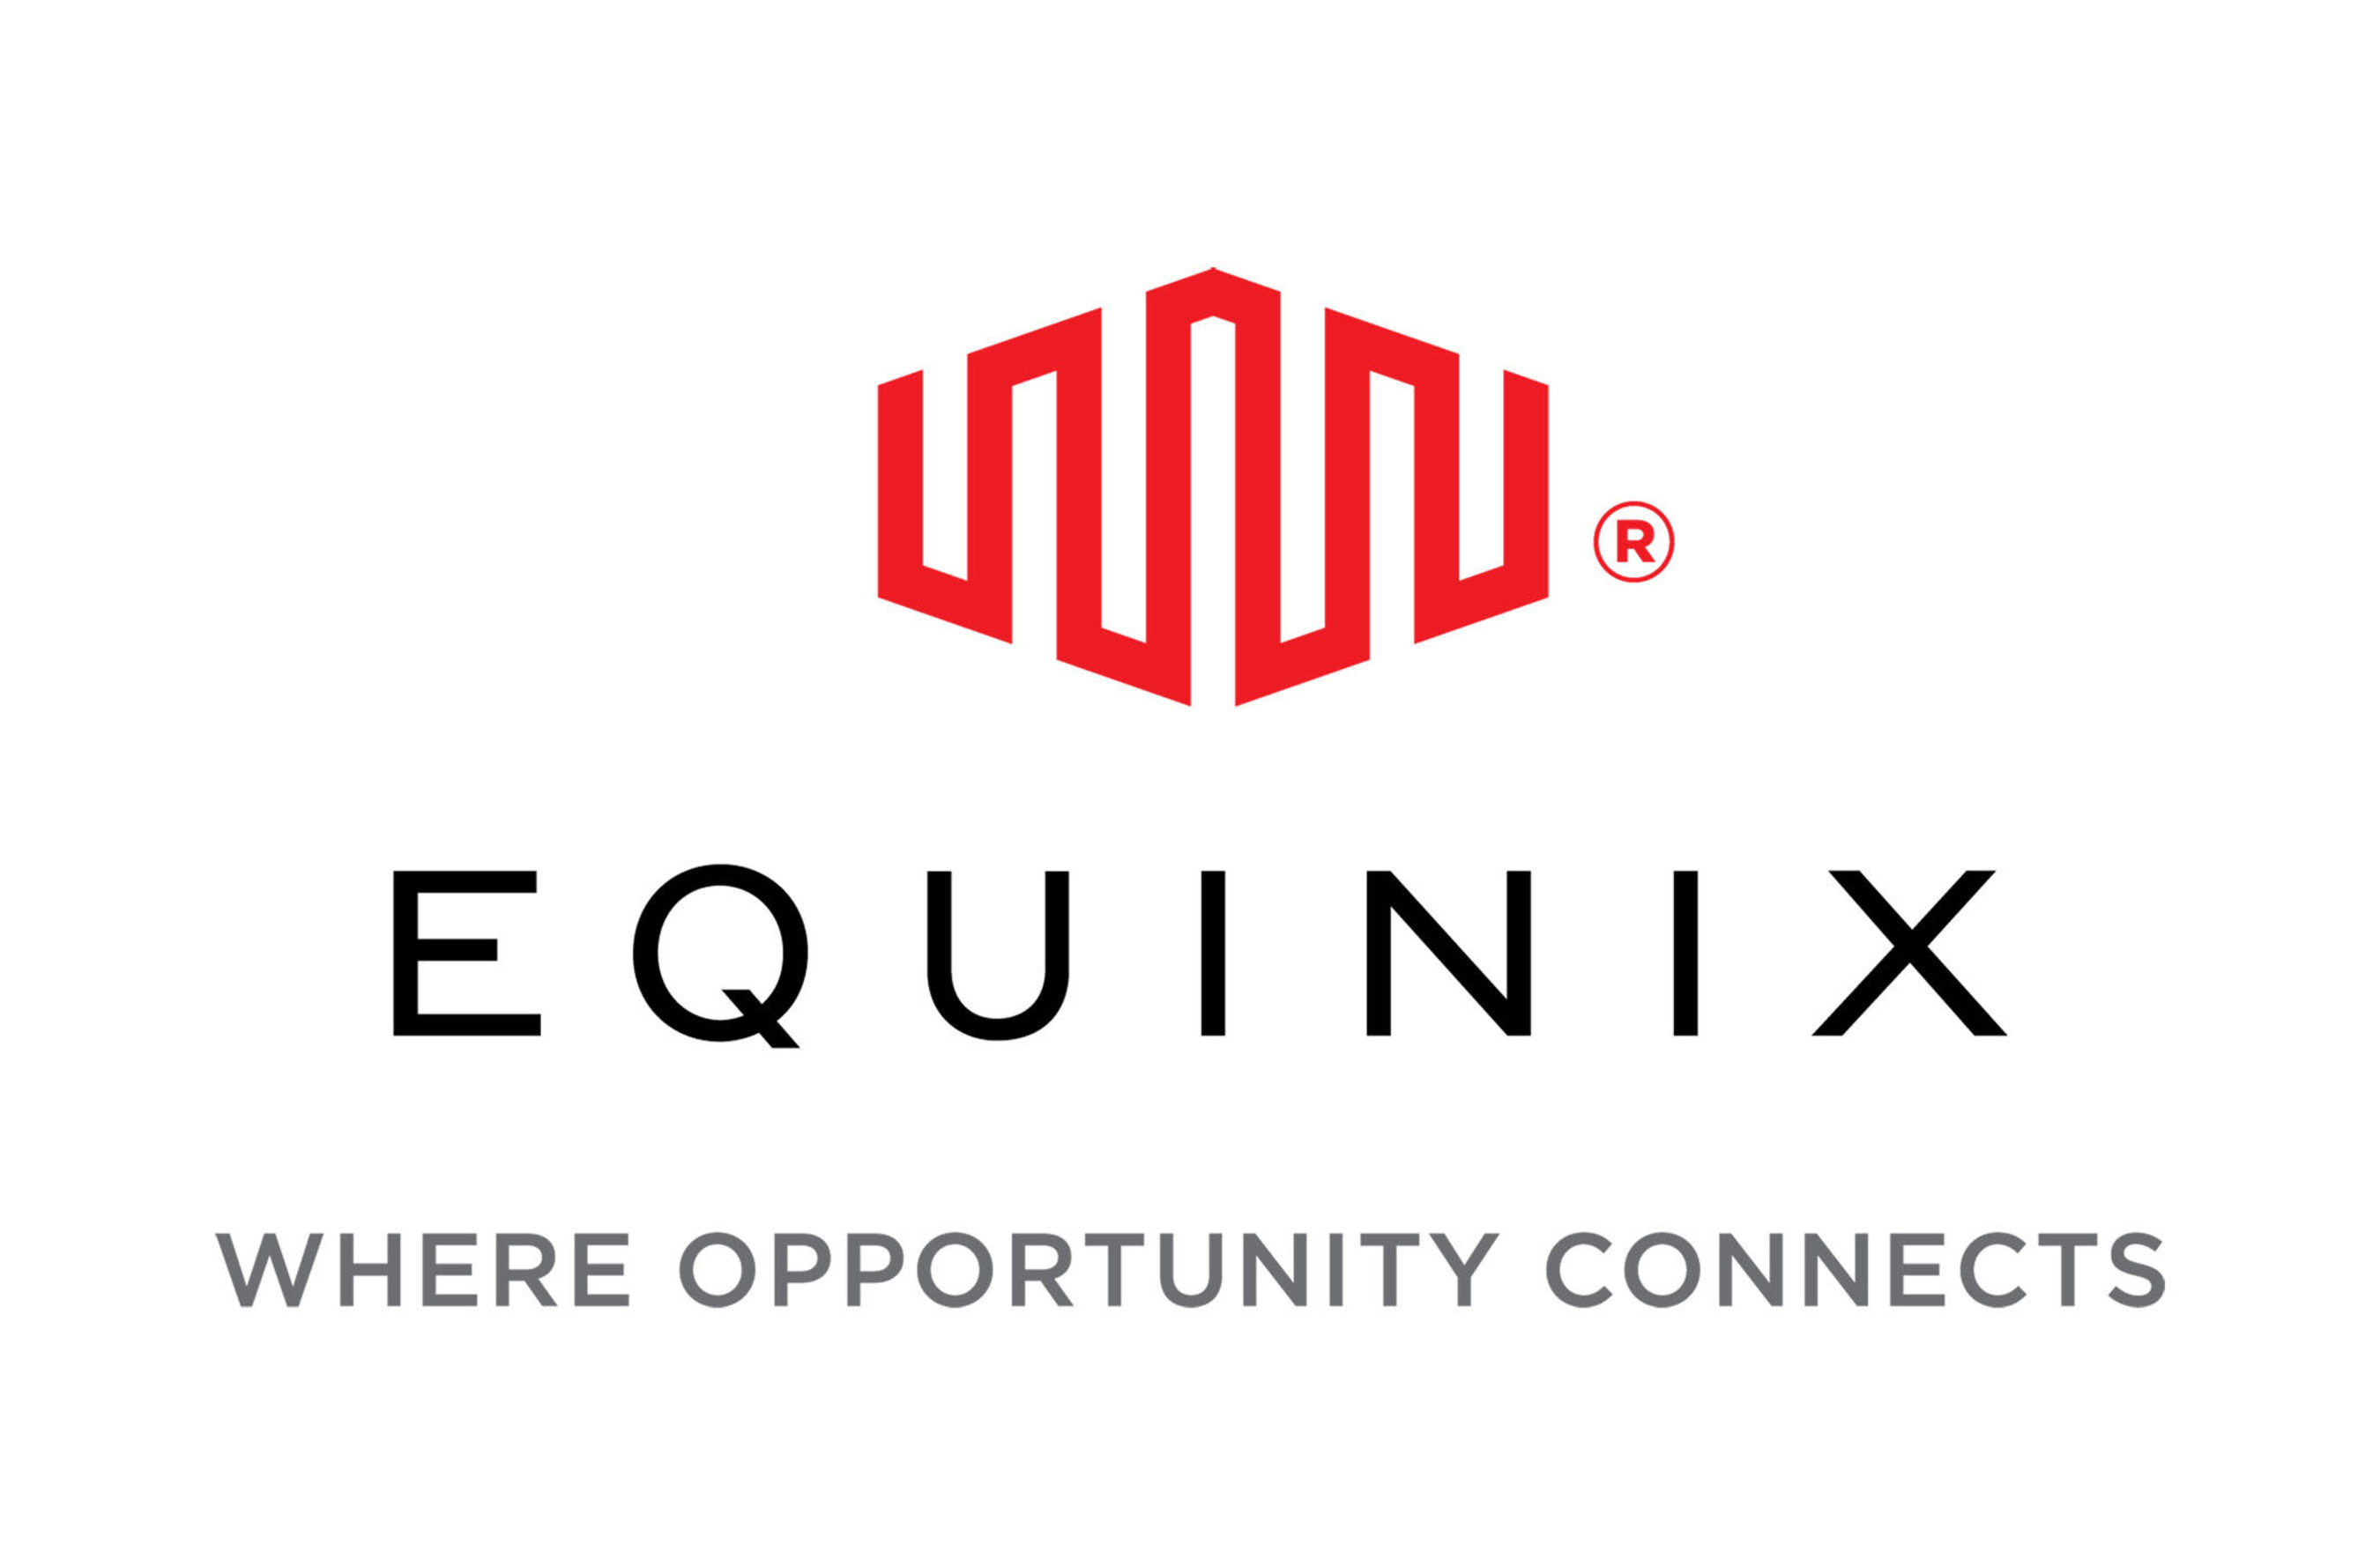 MEDIA ALERT: Equinix to Participate in NAREIT REITWorld 2015 Conference